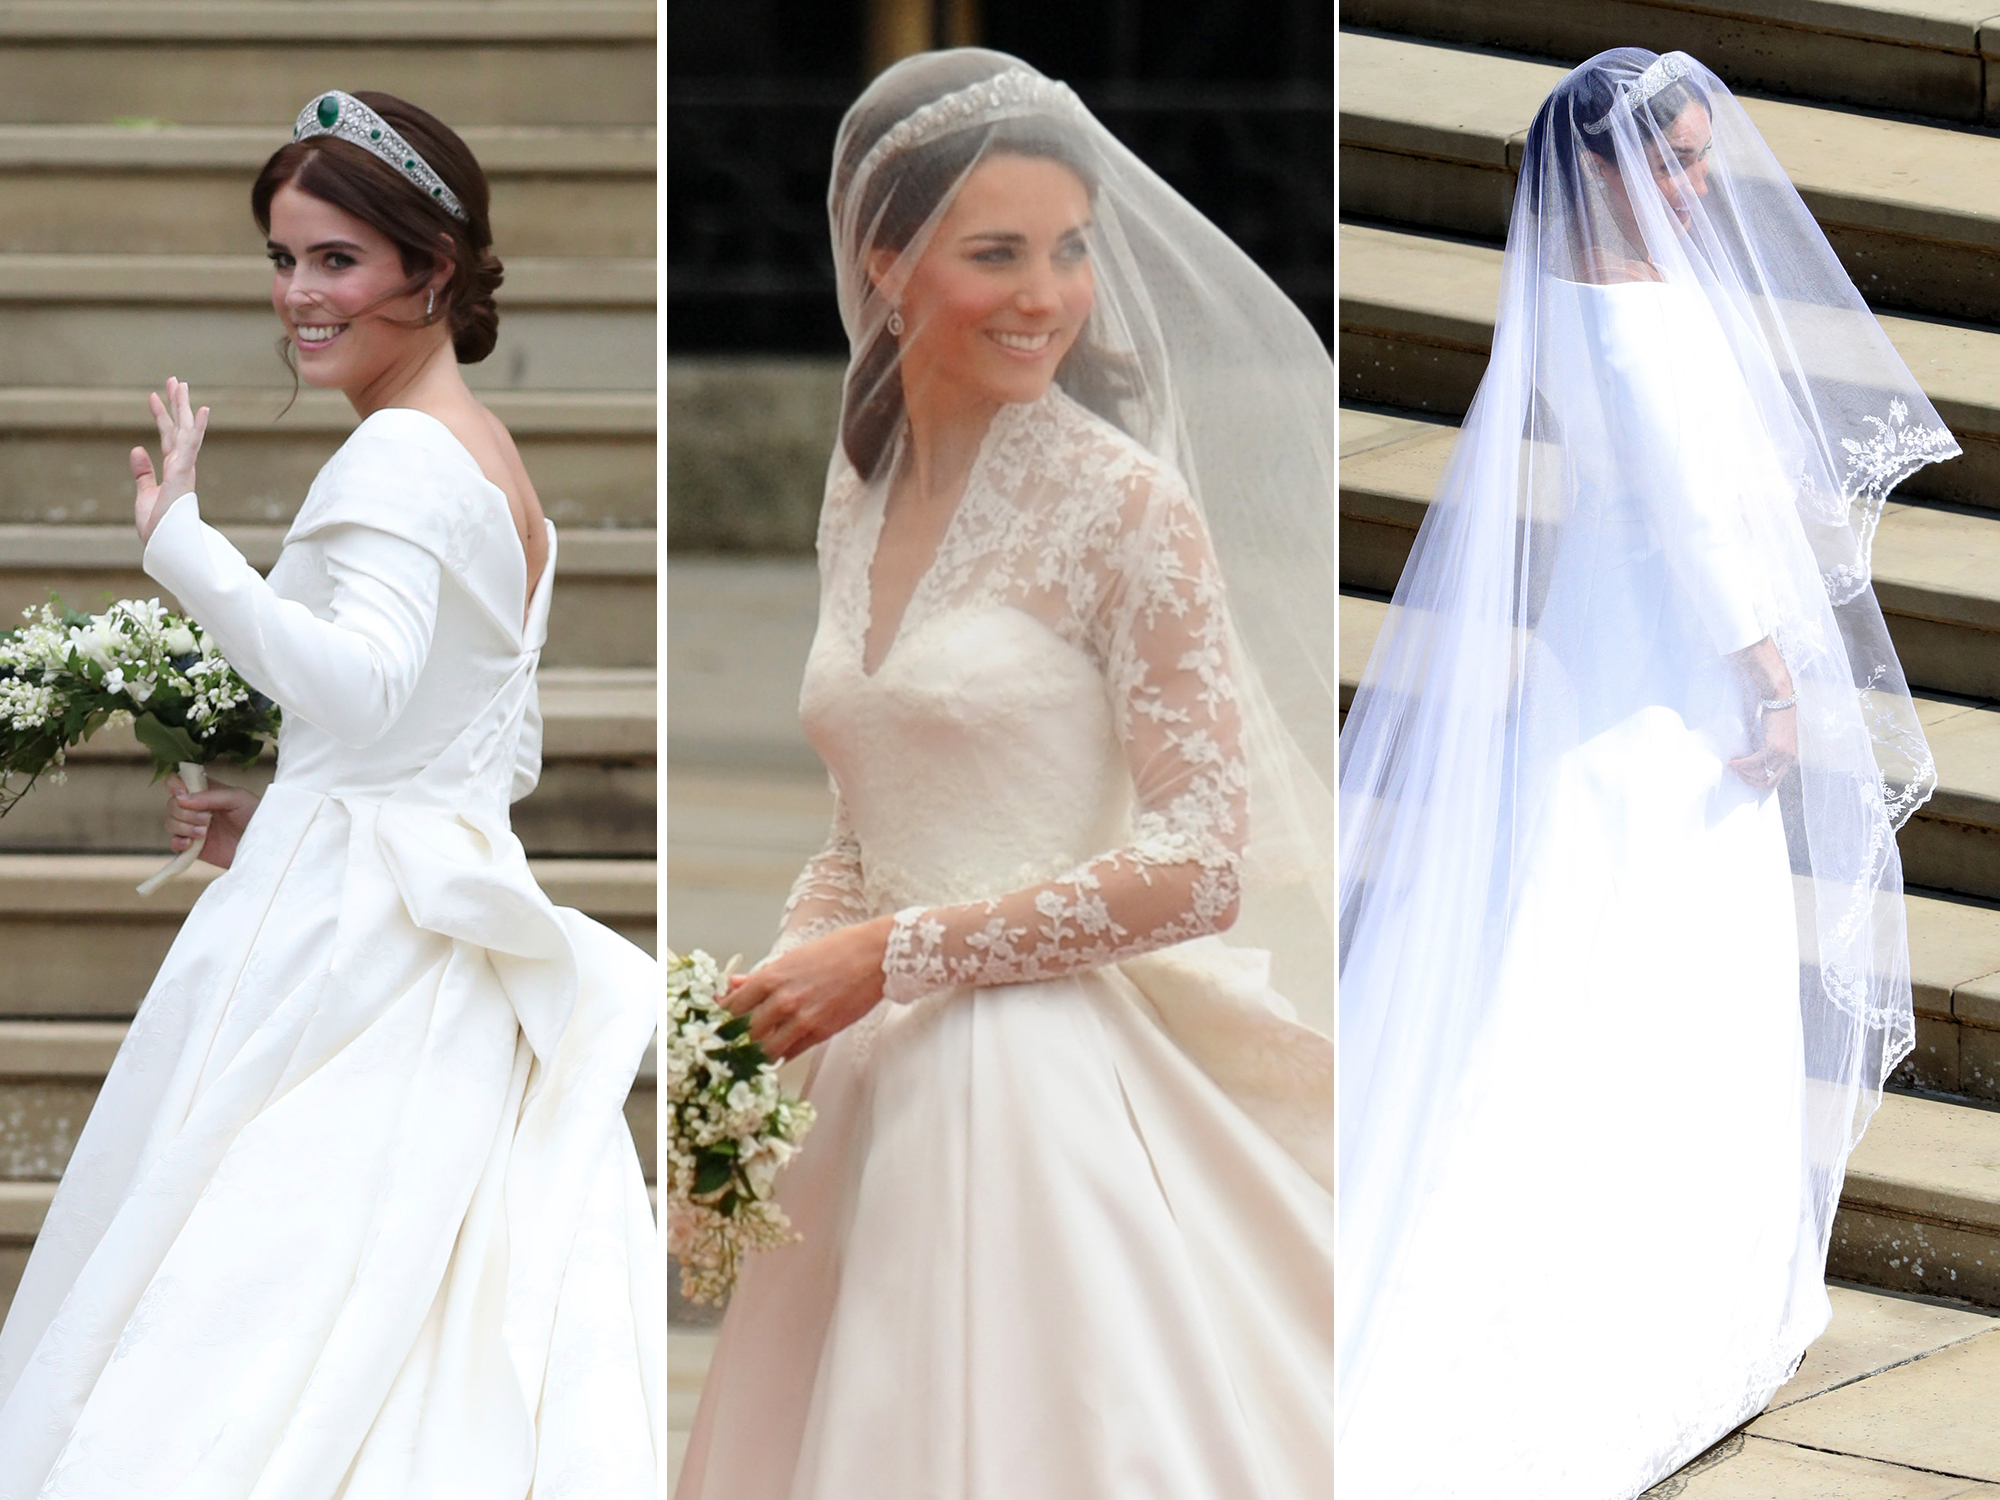 How Princess Eugenies Wedding Dress Differs From Kate Middleton And Meghan Markles